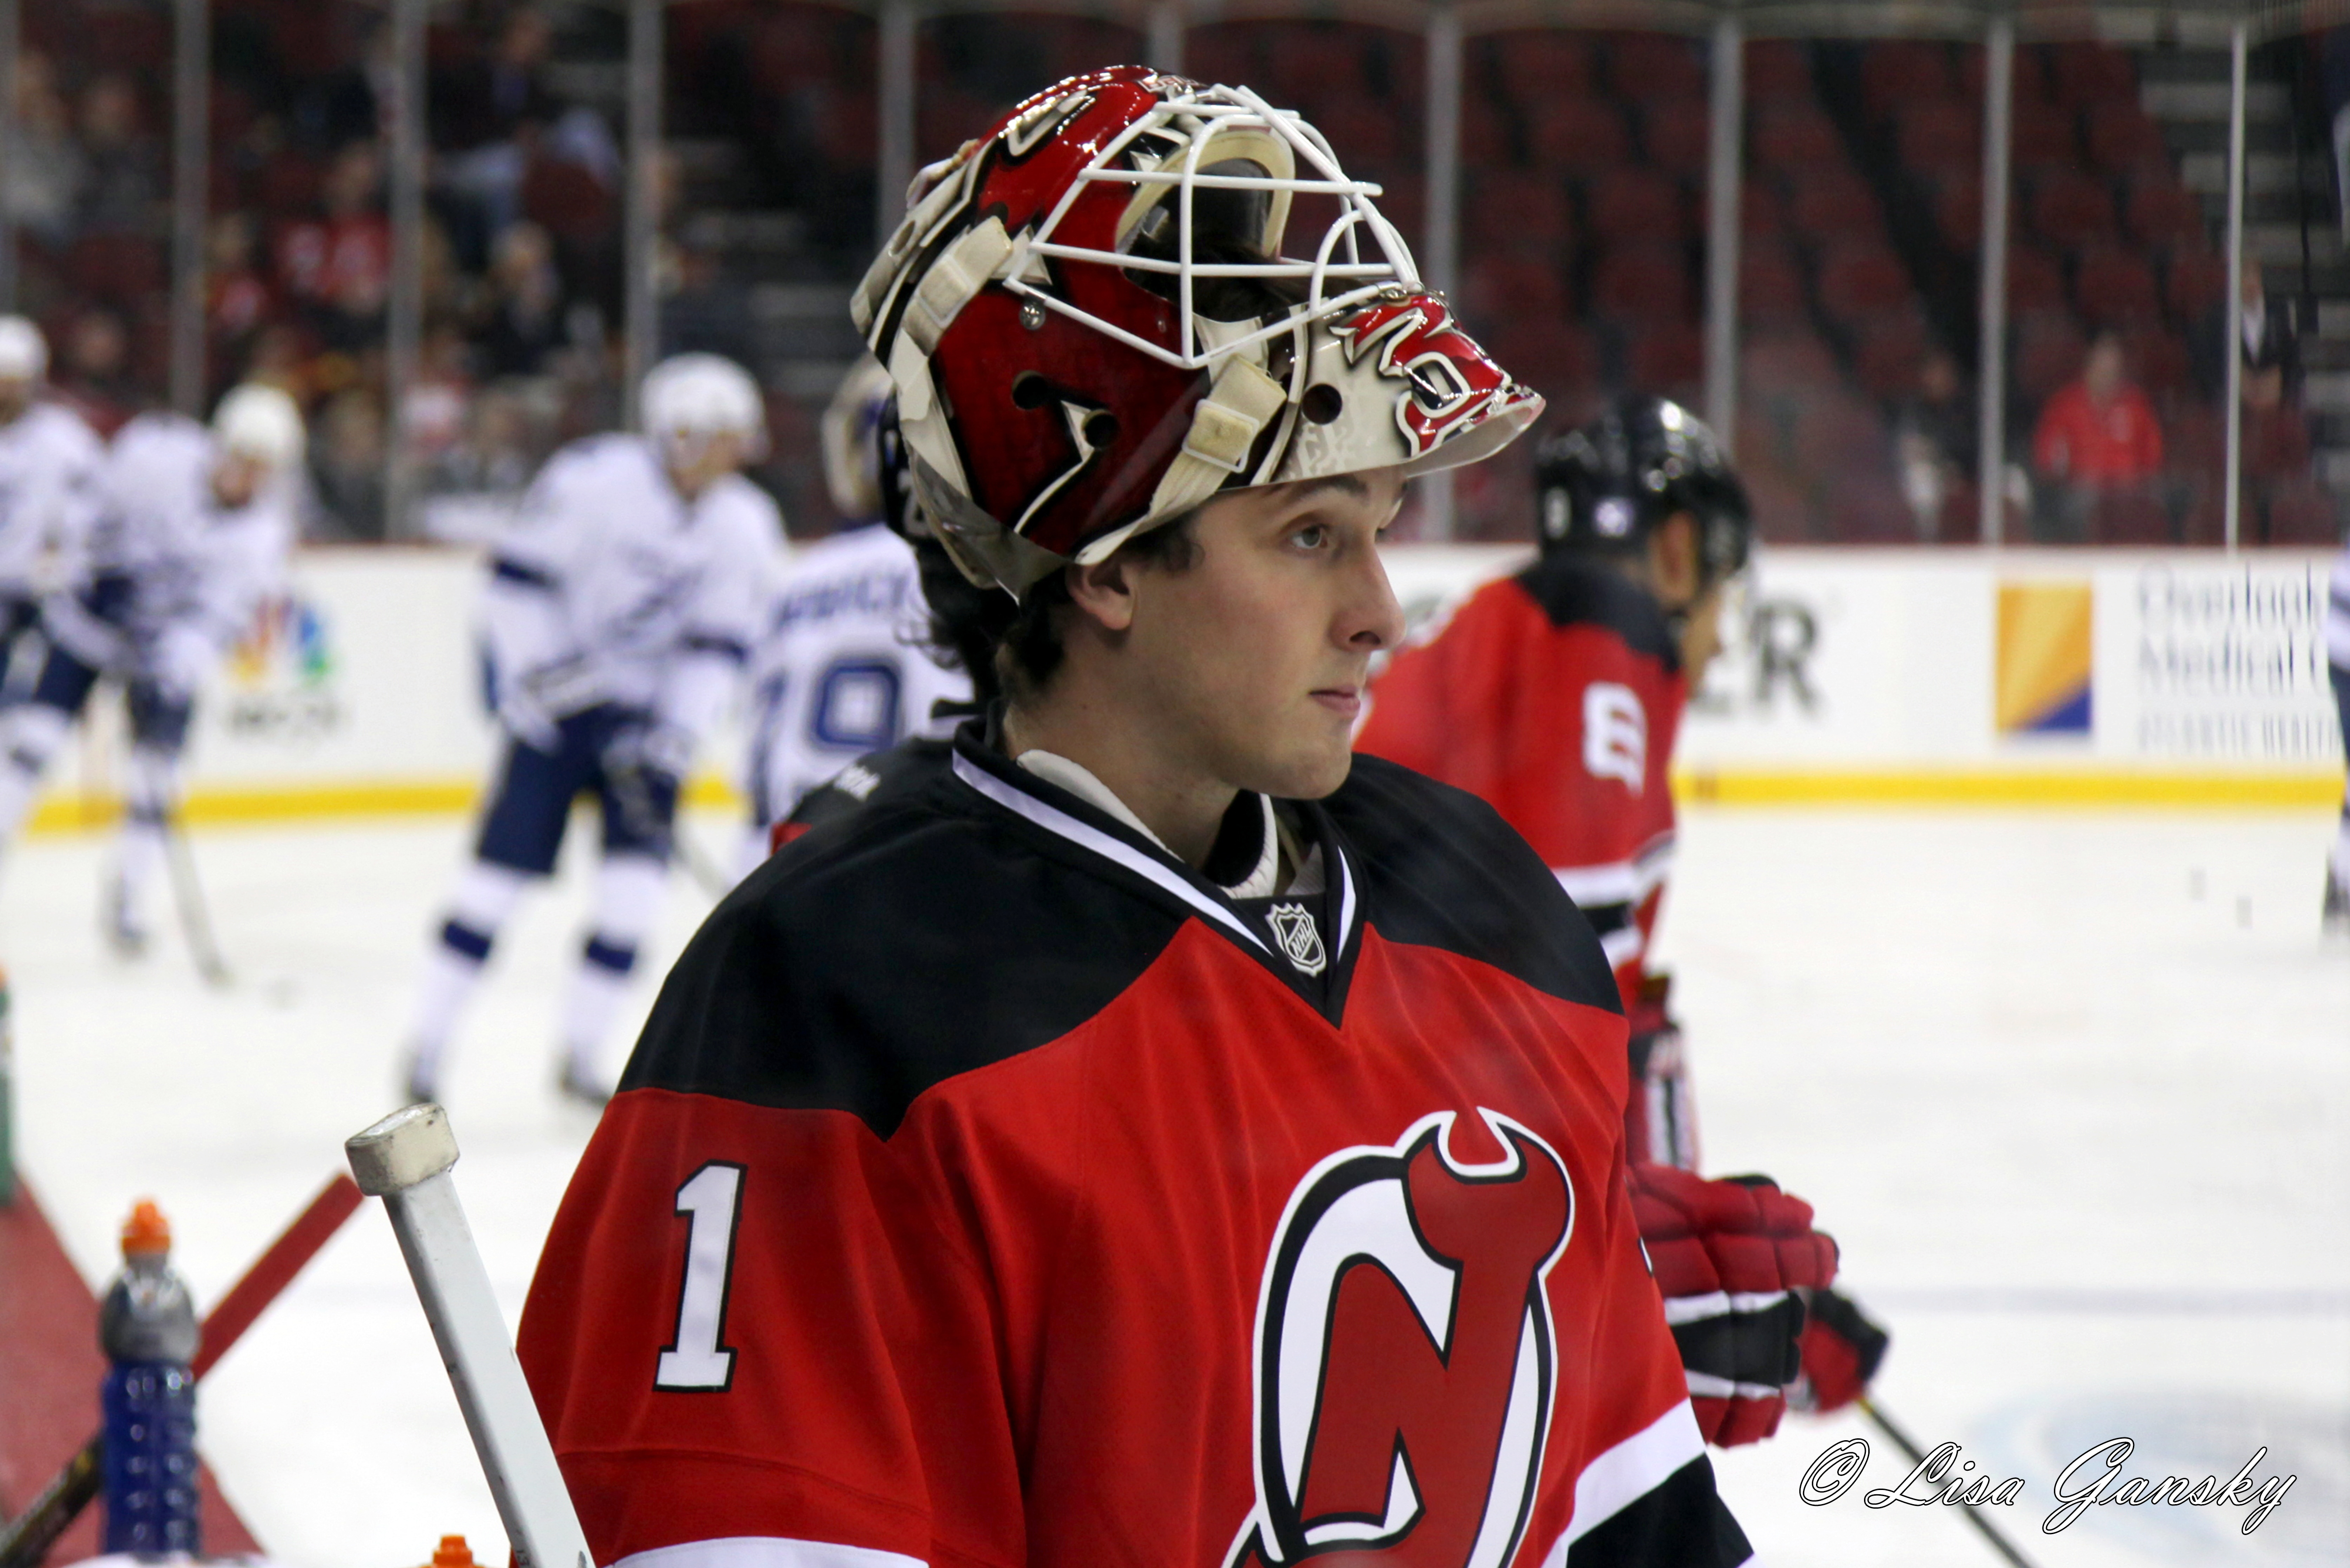 sports shoes 4e421 d4bc8 File:Keith Kinkaid - New Jersey Devils.jpg - Wikimedia Commons